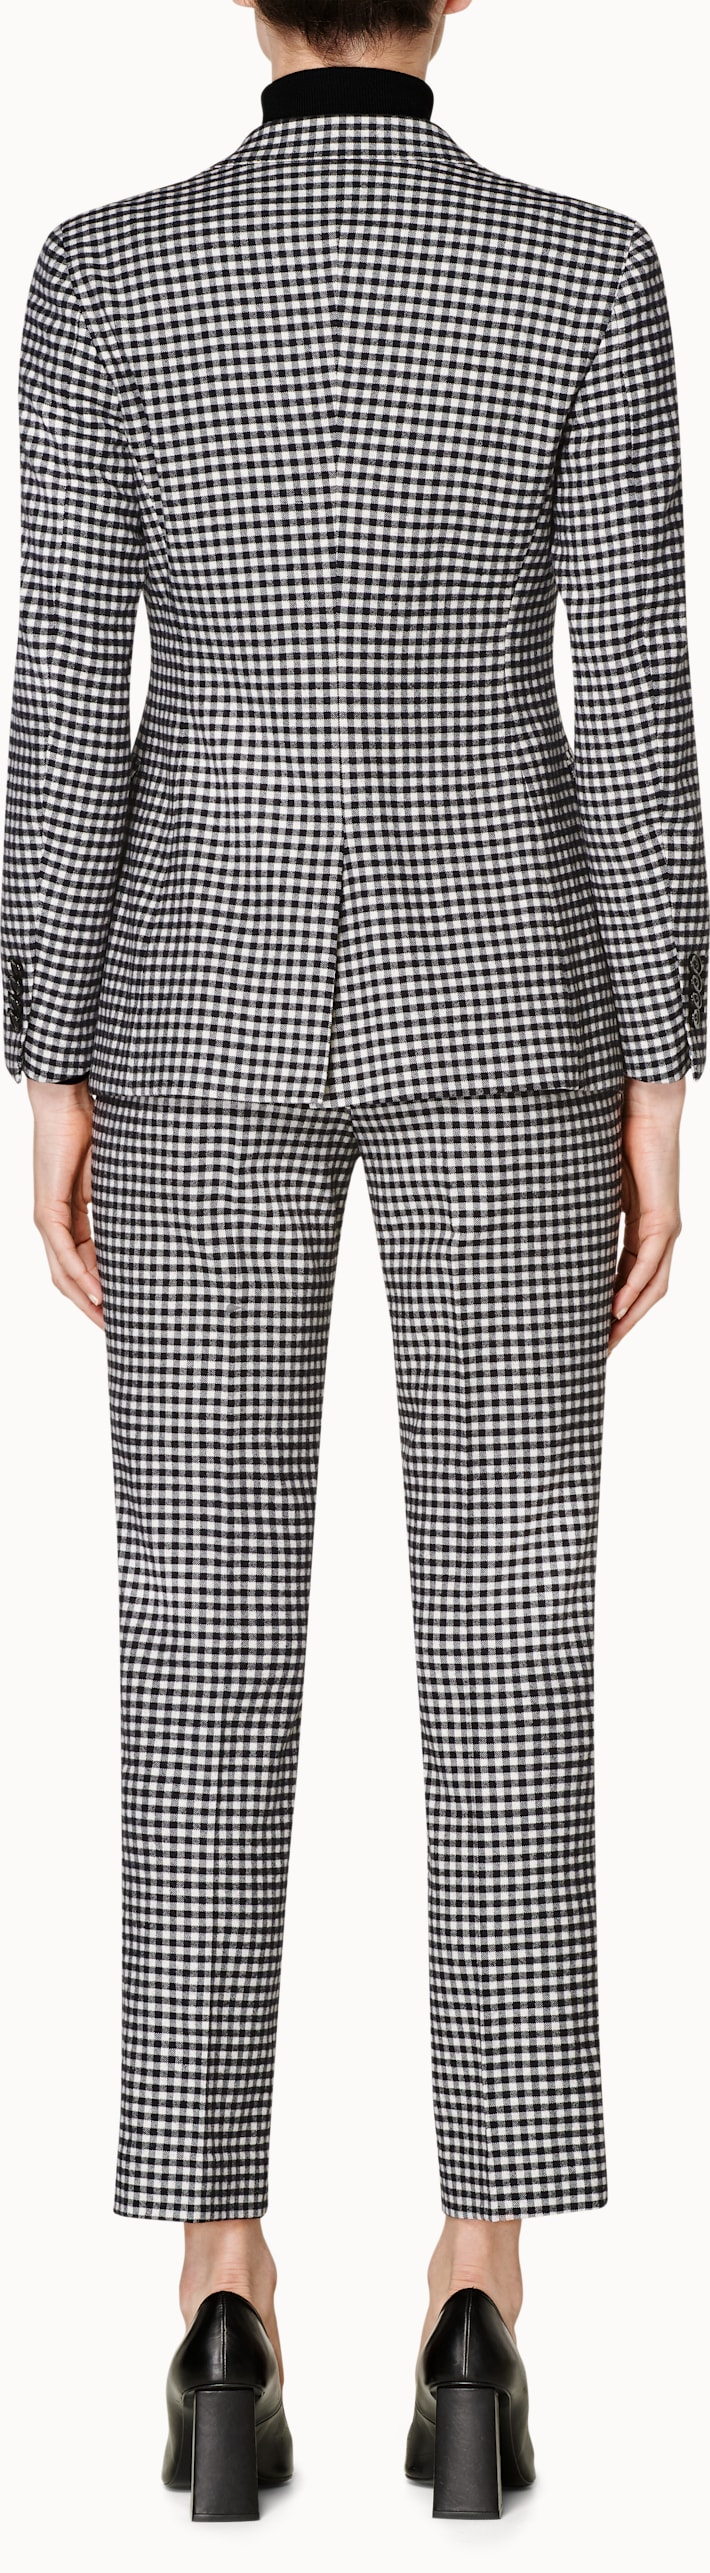 Cameron Black & White Checked Suit